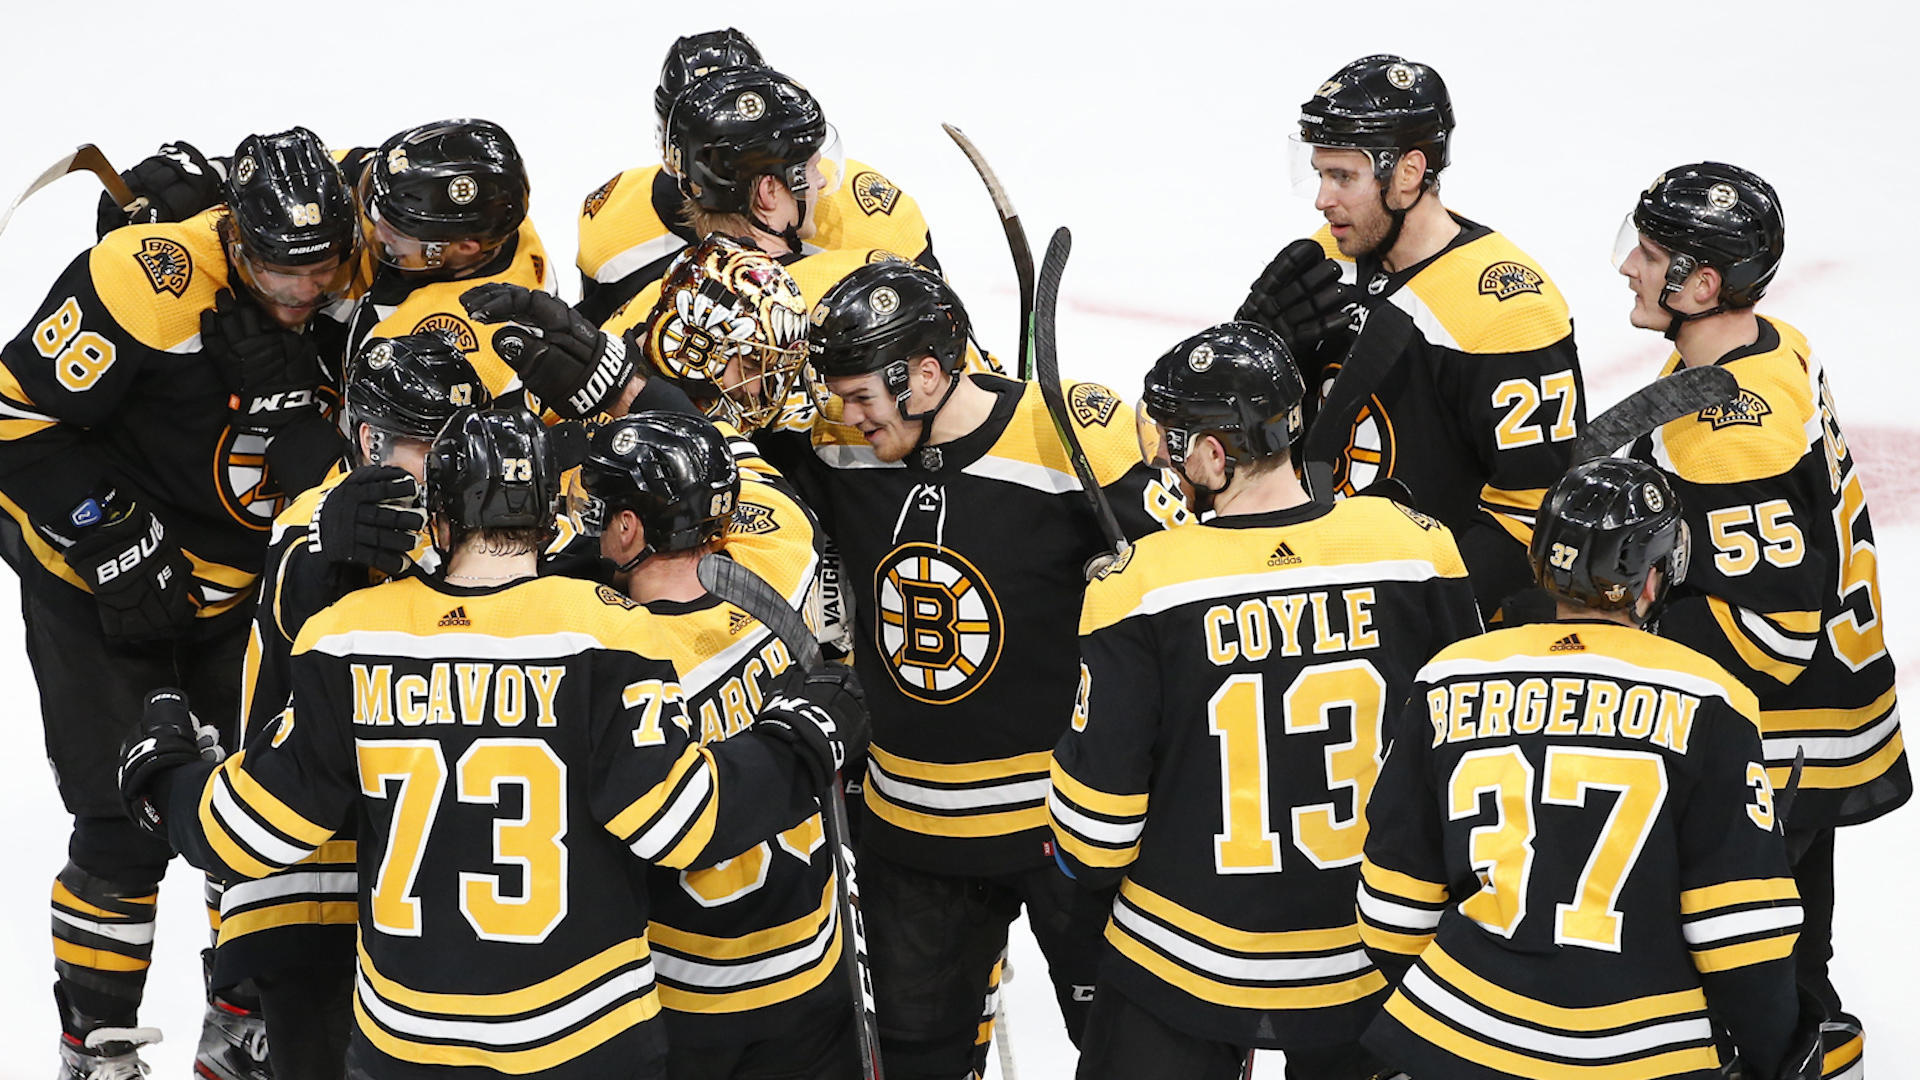 2019 Stanley Cup Playoffs: Five reasons the Toronto Maple Leafs were eliminated by the Boston Bruins